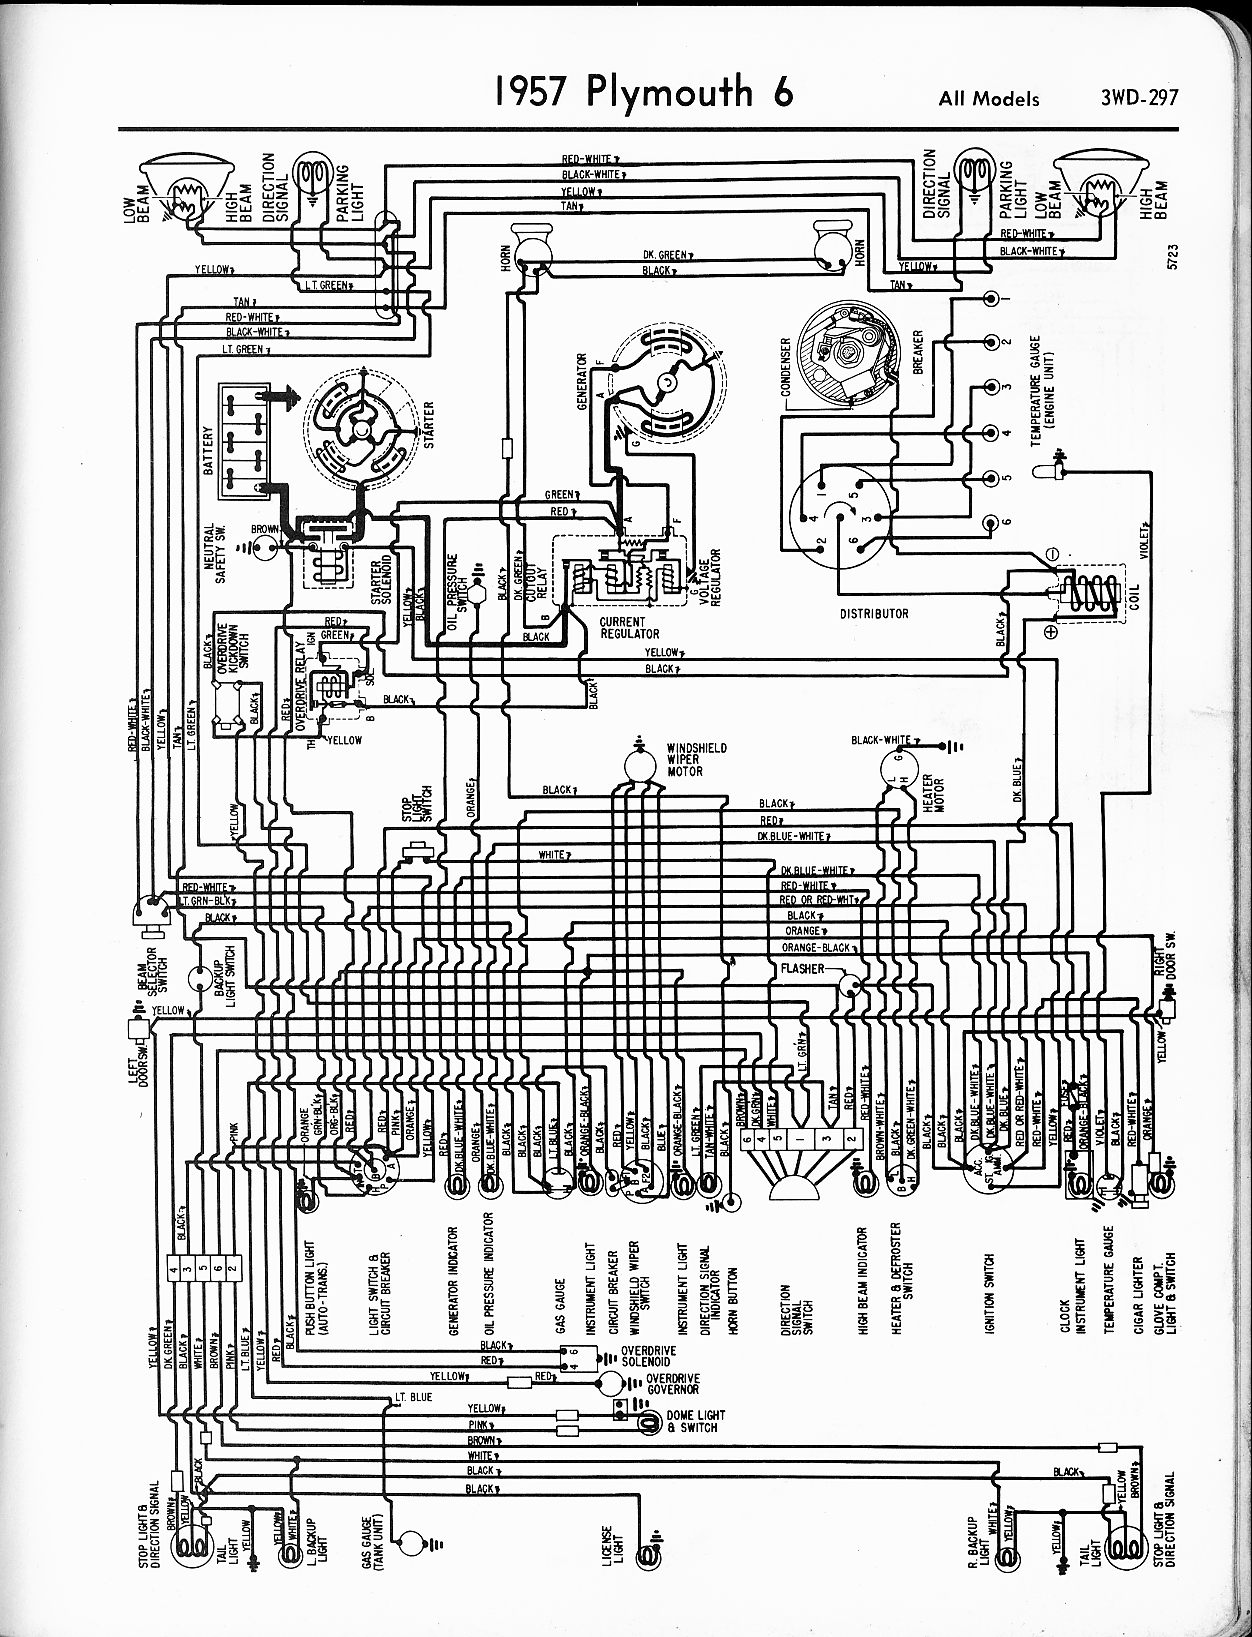 1976 Plymouth Ignition Wiring Diagram Free For You 1956 Chevy Truck 1965 The Old Car Manual Project Rh Oldcarmanualproject Com Switch